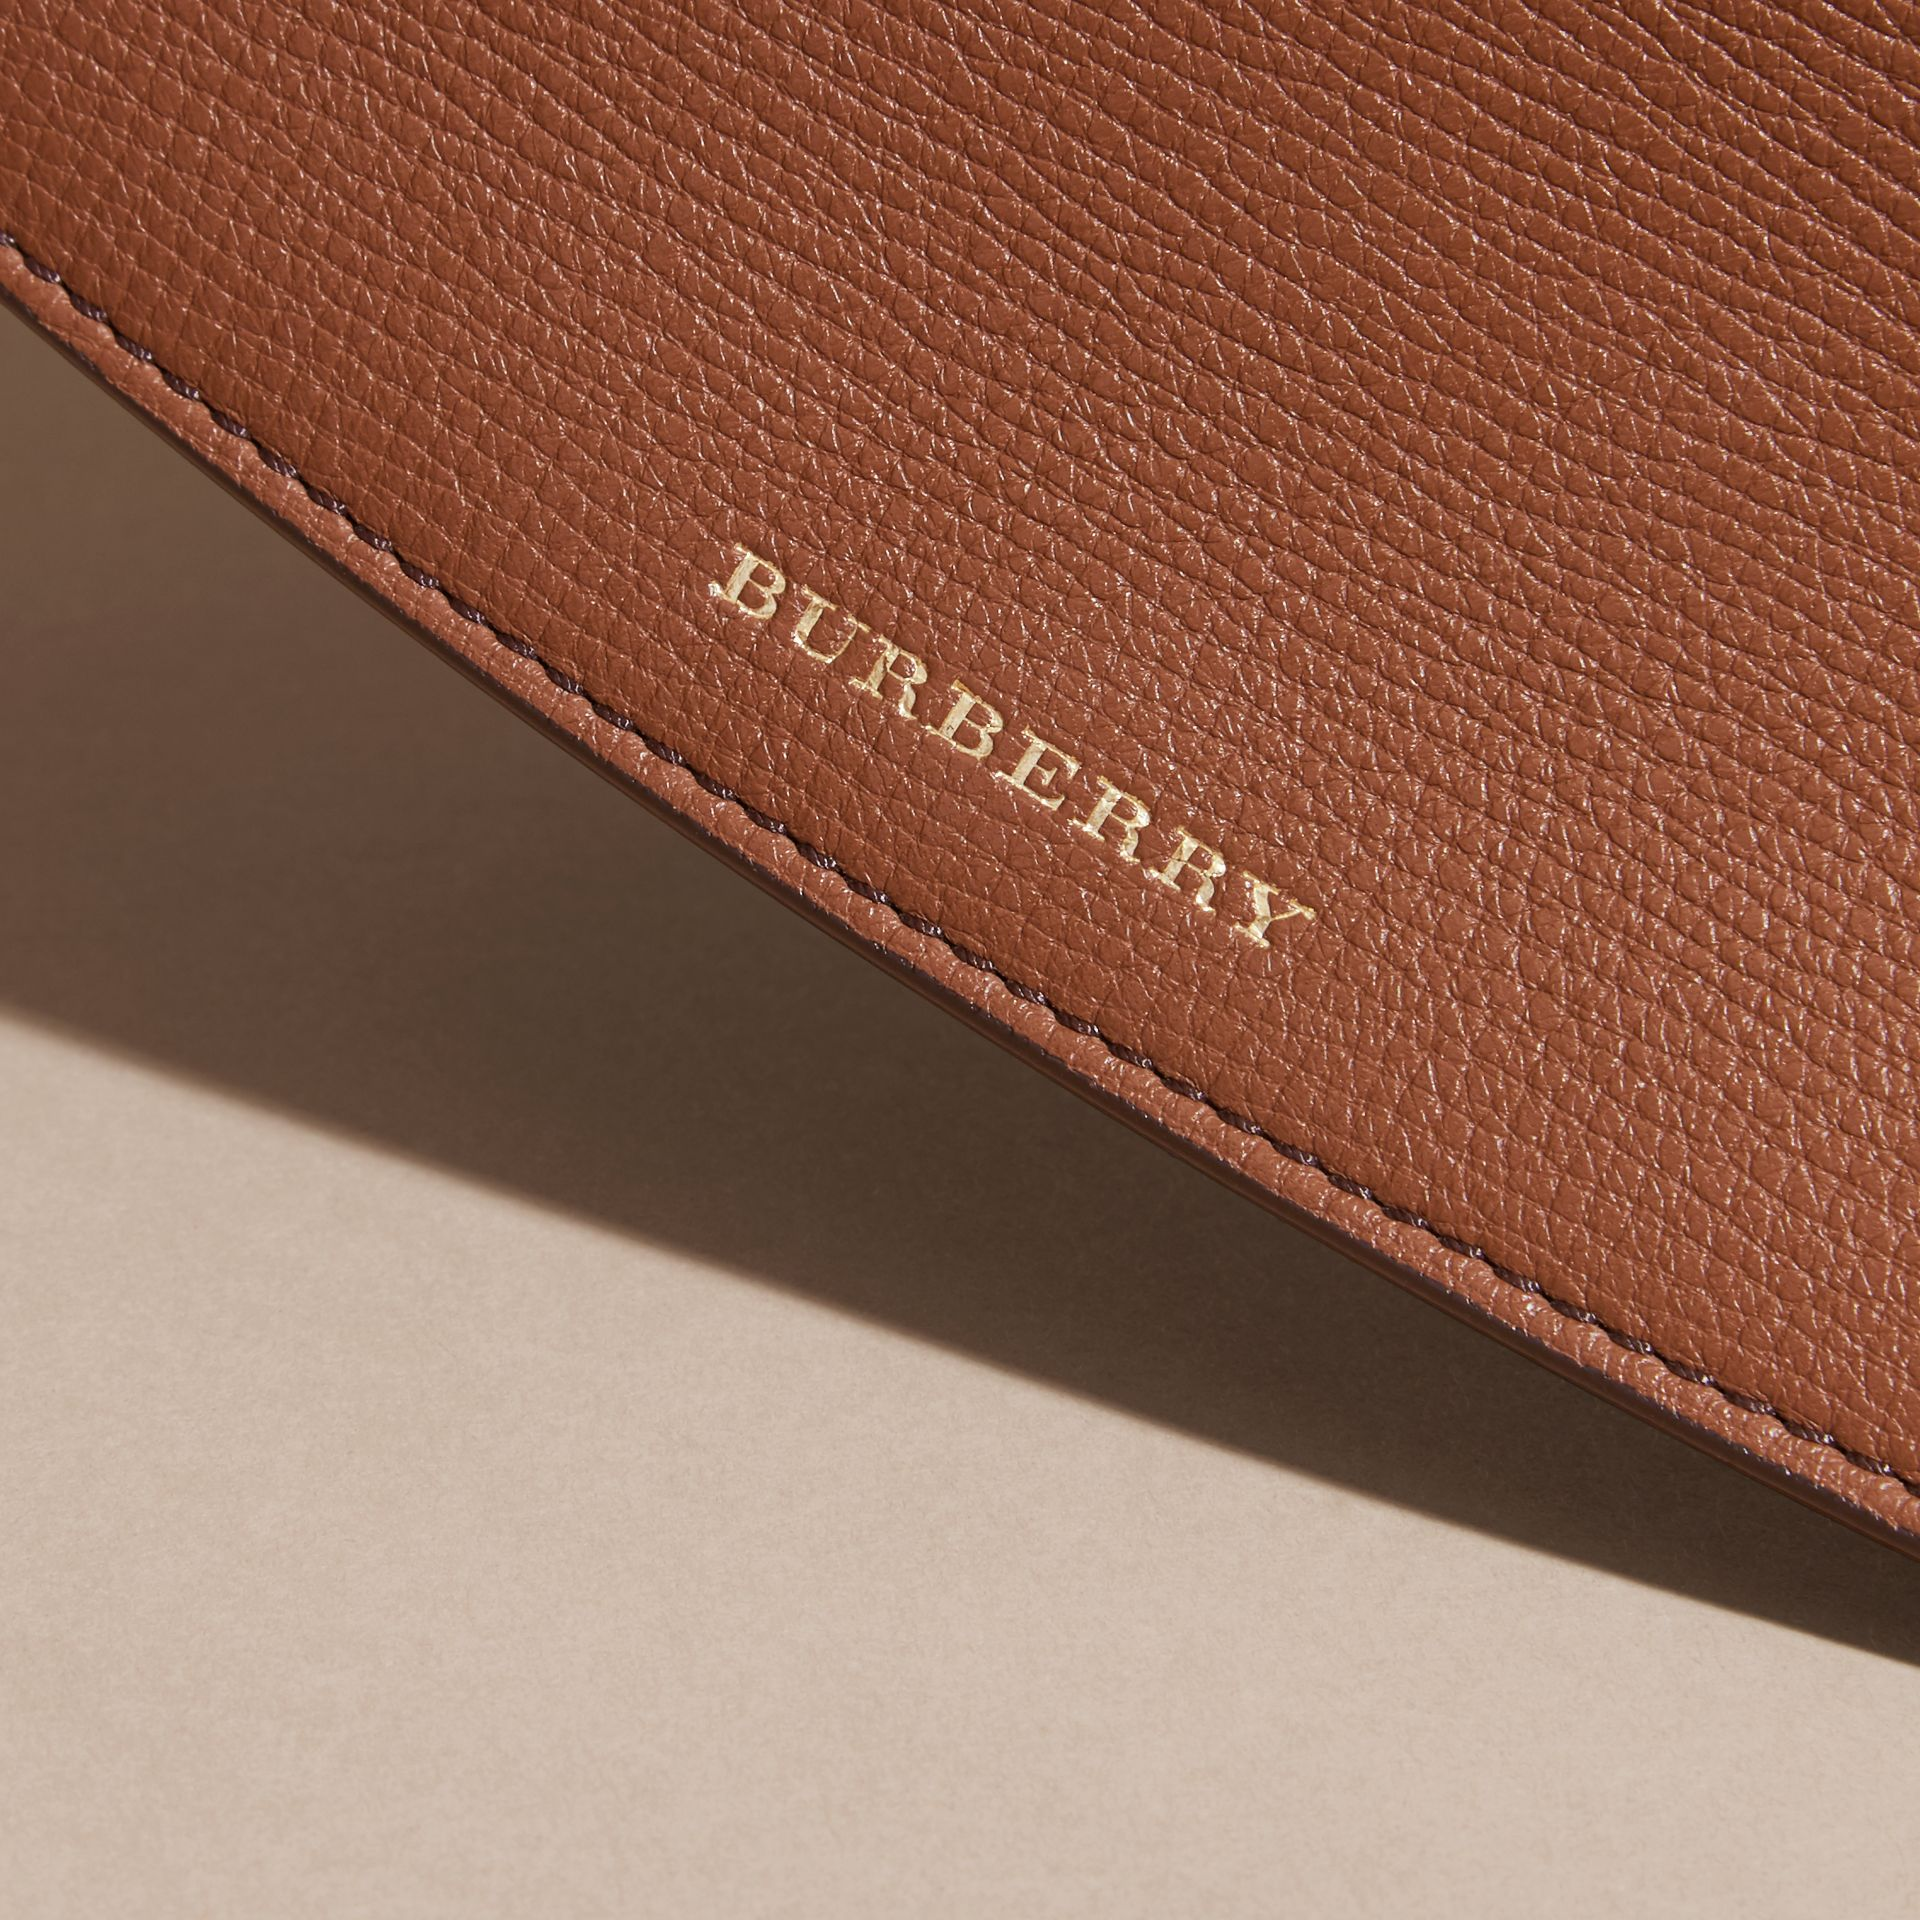 House Check And Leather Continental Wallet in Tan - Women | Burberry - gallery image 4